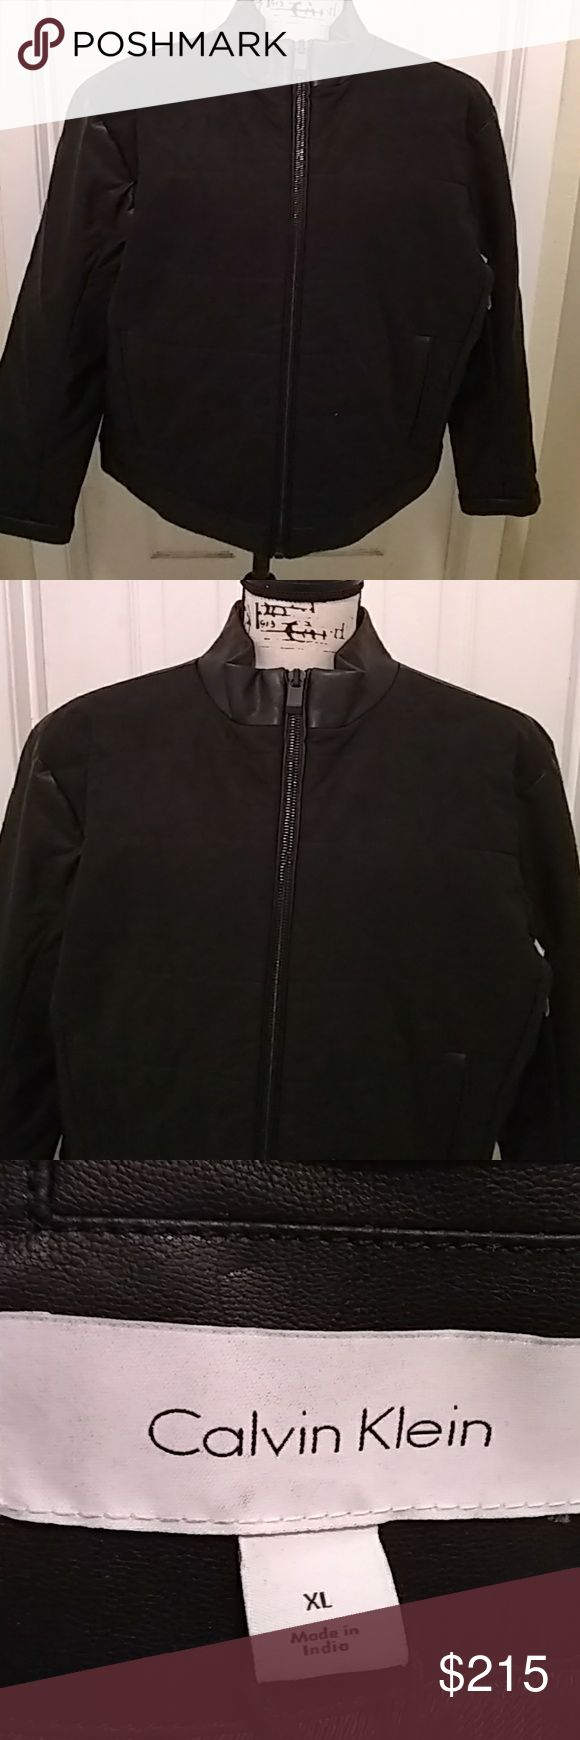 Men's Calvin Klein leather and suede coat This Calvin Klein leather/suede jacket is perfect for any season. The front body is suede while the back, arms etc are all leather. A beautiful coat for anytime wear. Calvin Klein Jackets & Coats Bomber & Varsity